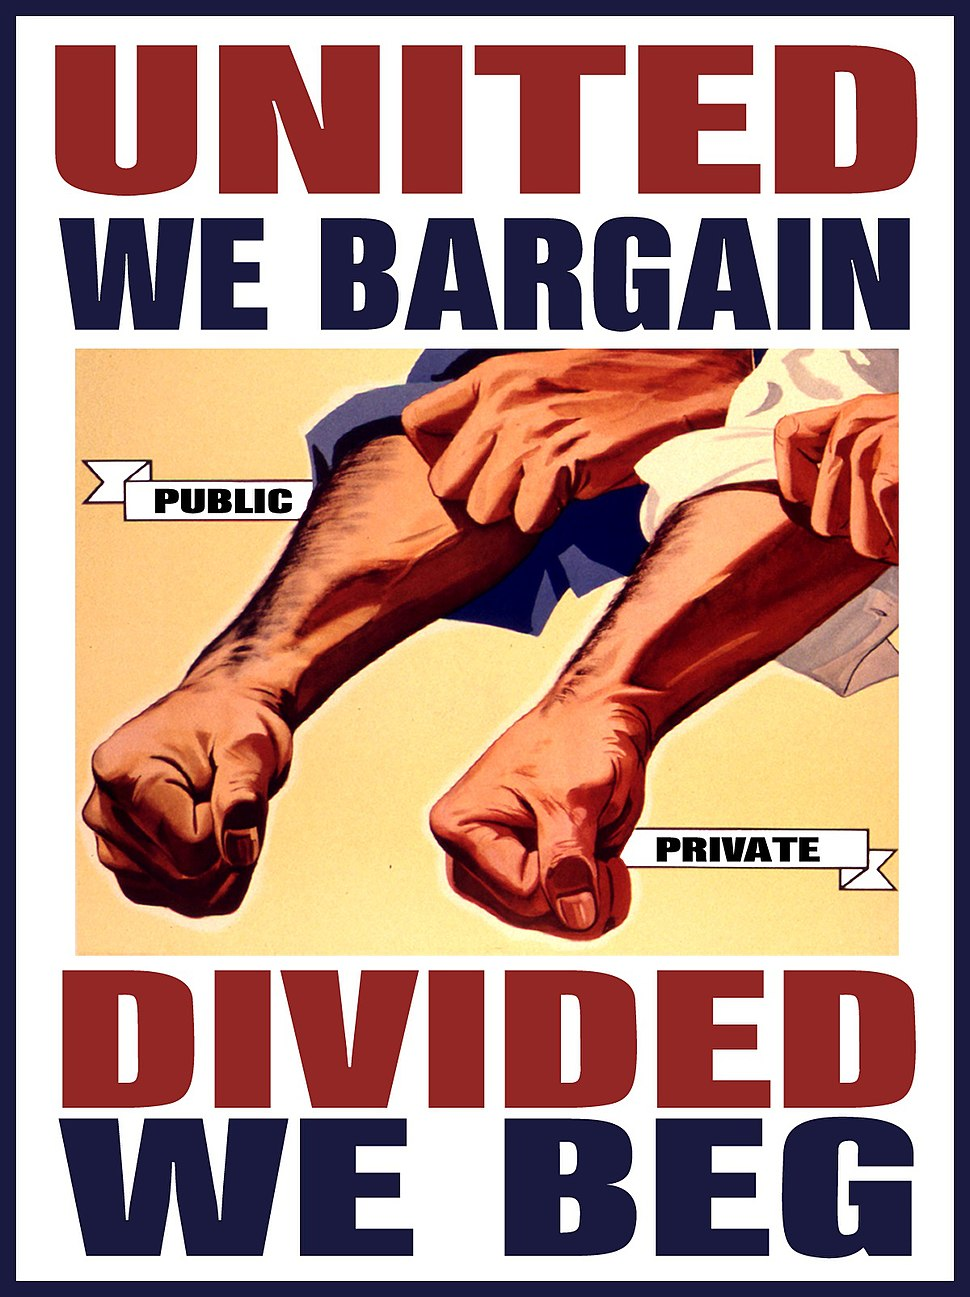 United We Bargain Divided We Beg Two Forearms in Unison By DonkeyHotey